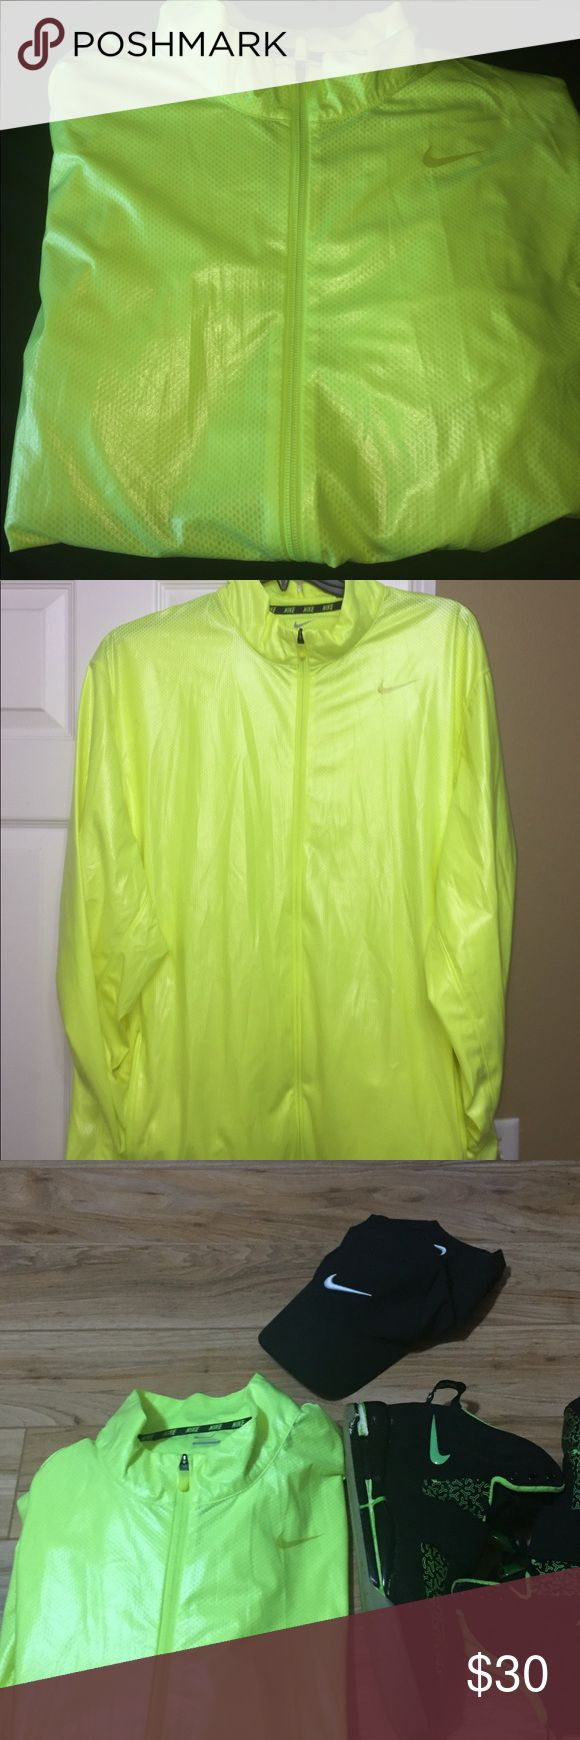 NIKE waterproof jacket💦 Never worn. Durable water-repellent (DWR) construction dominates a no-excuses workout jacket built to shield wind and rain as you're moving. Nike Jackets & Coats Raincoats